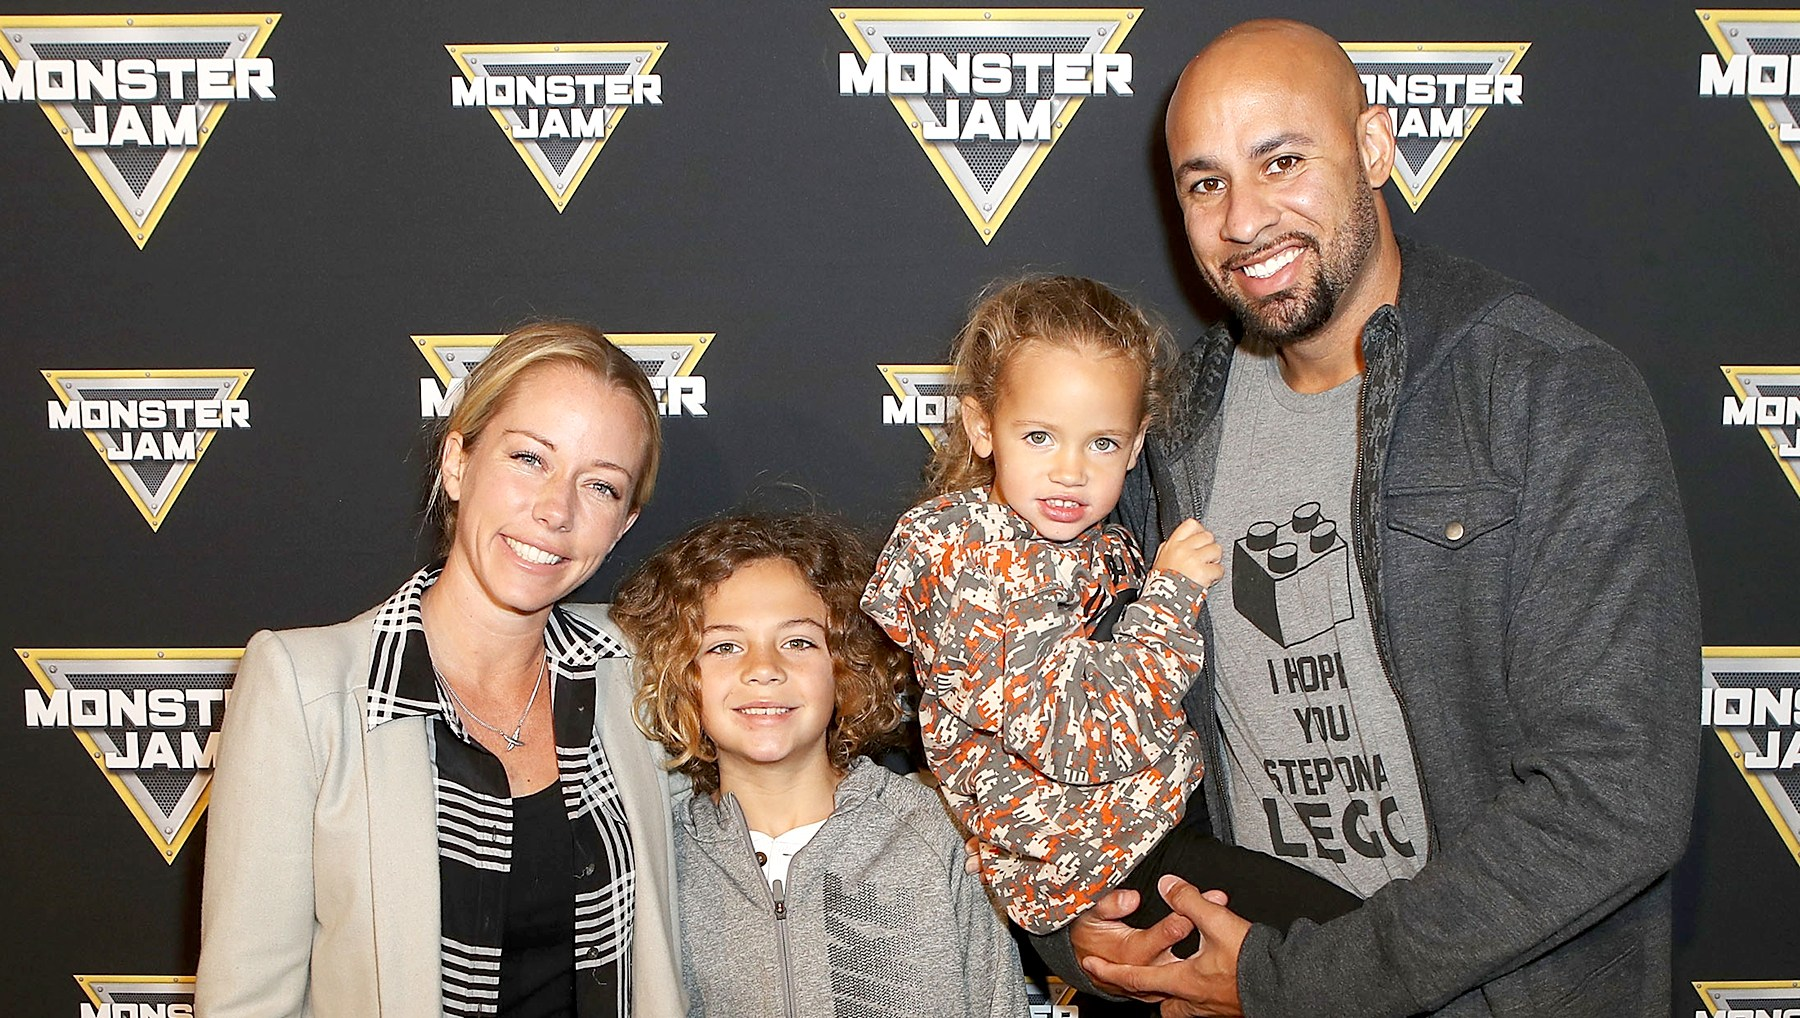 Kendra-Wilkinson-Baskett,-son-Hank,-daughter-Alijah,-and-Hank-Baskett